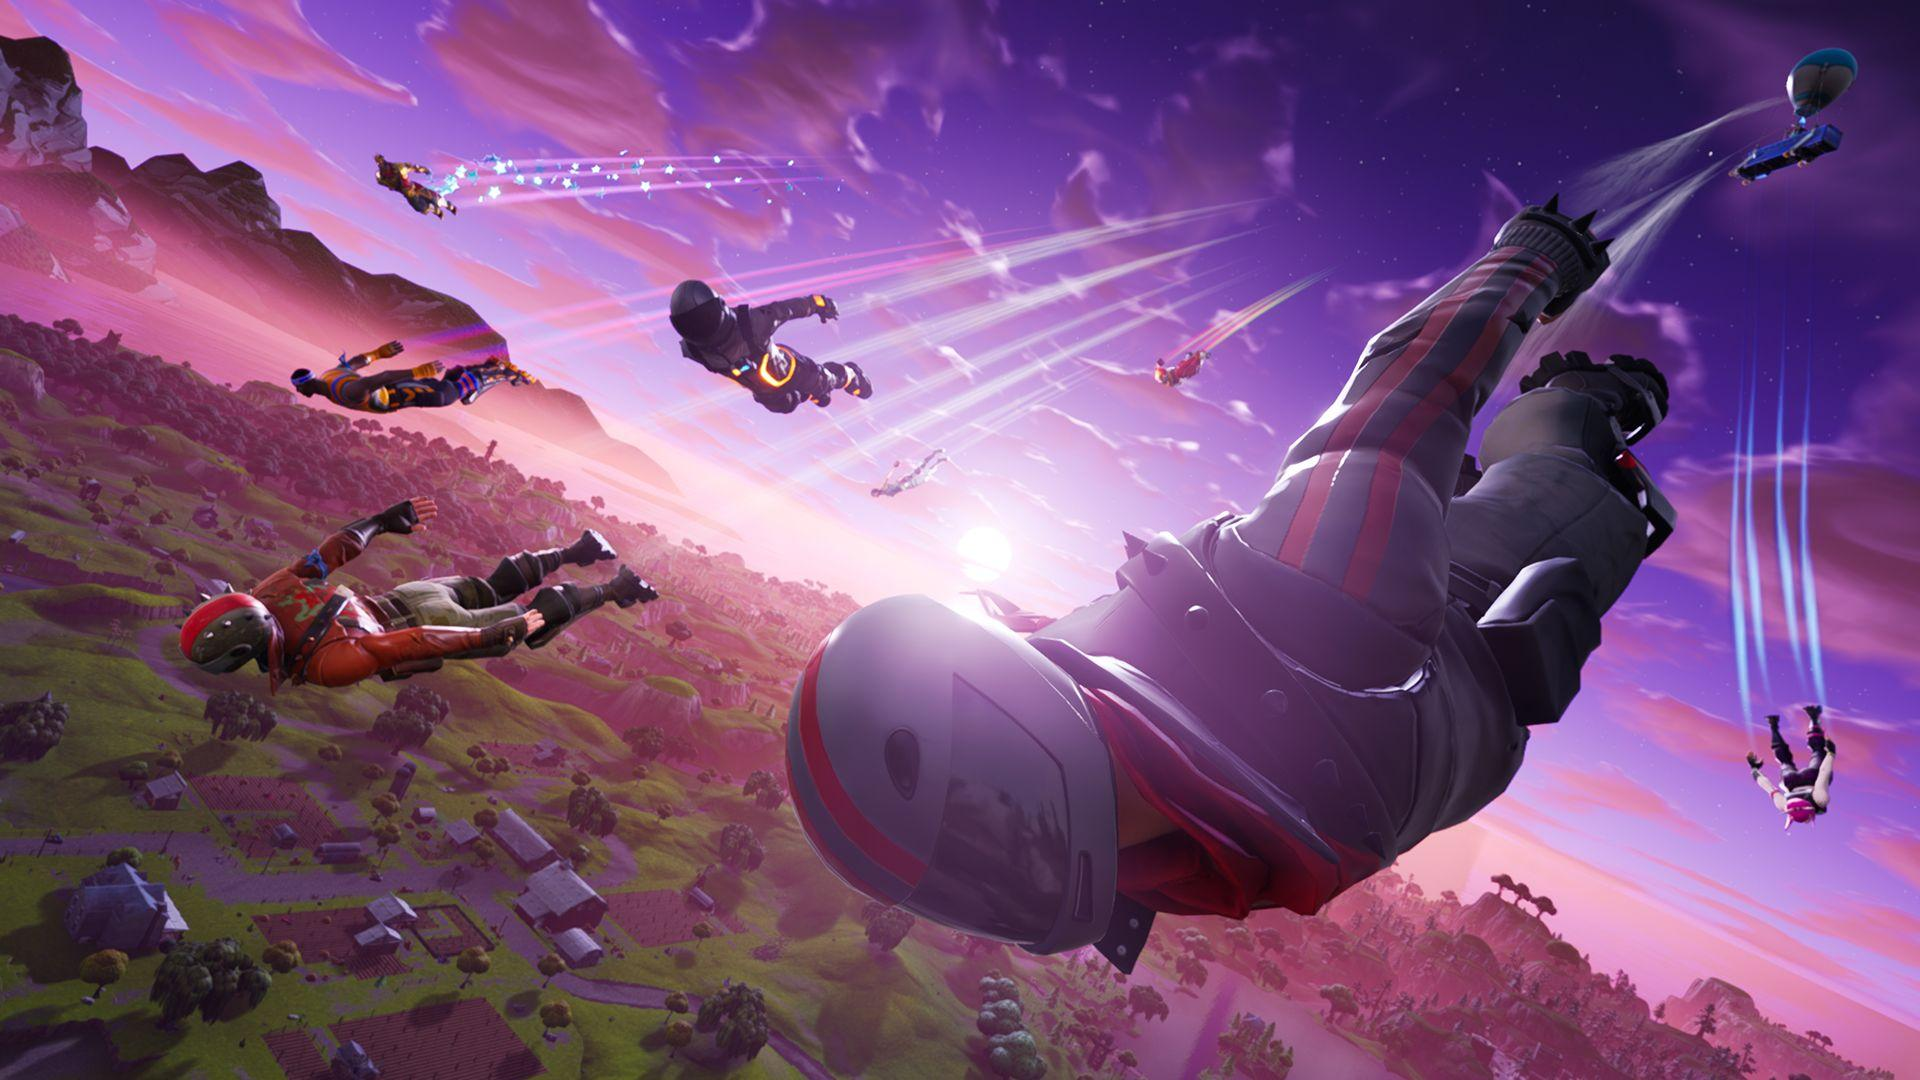 Fortnite Wallpapers HD: Desktop PC, Mac, iPhone & Android [Latest 2019]